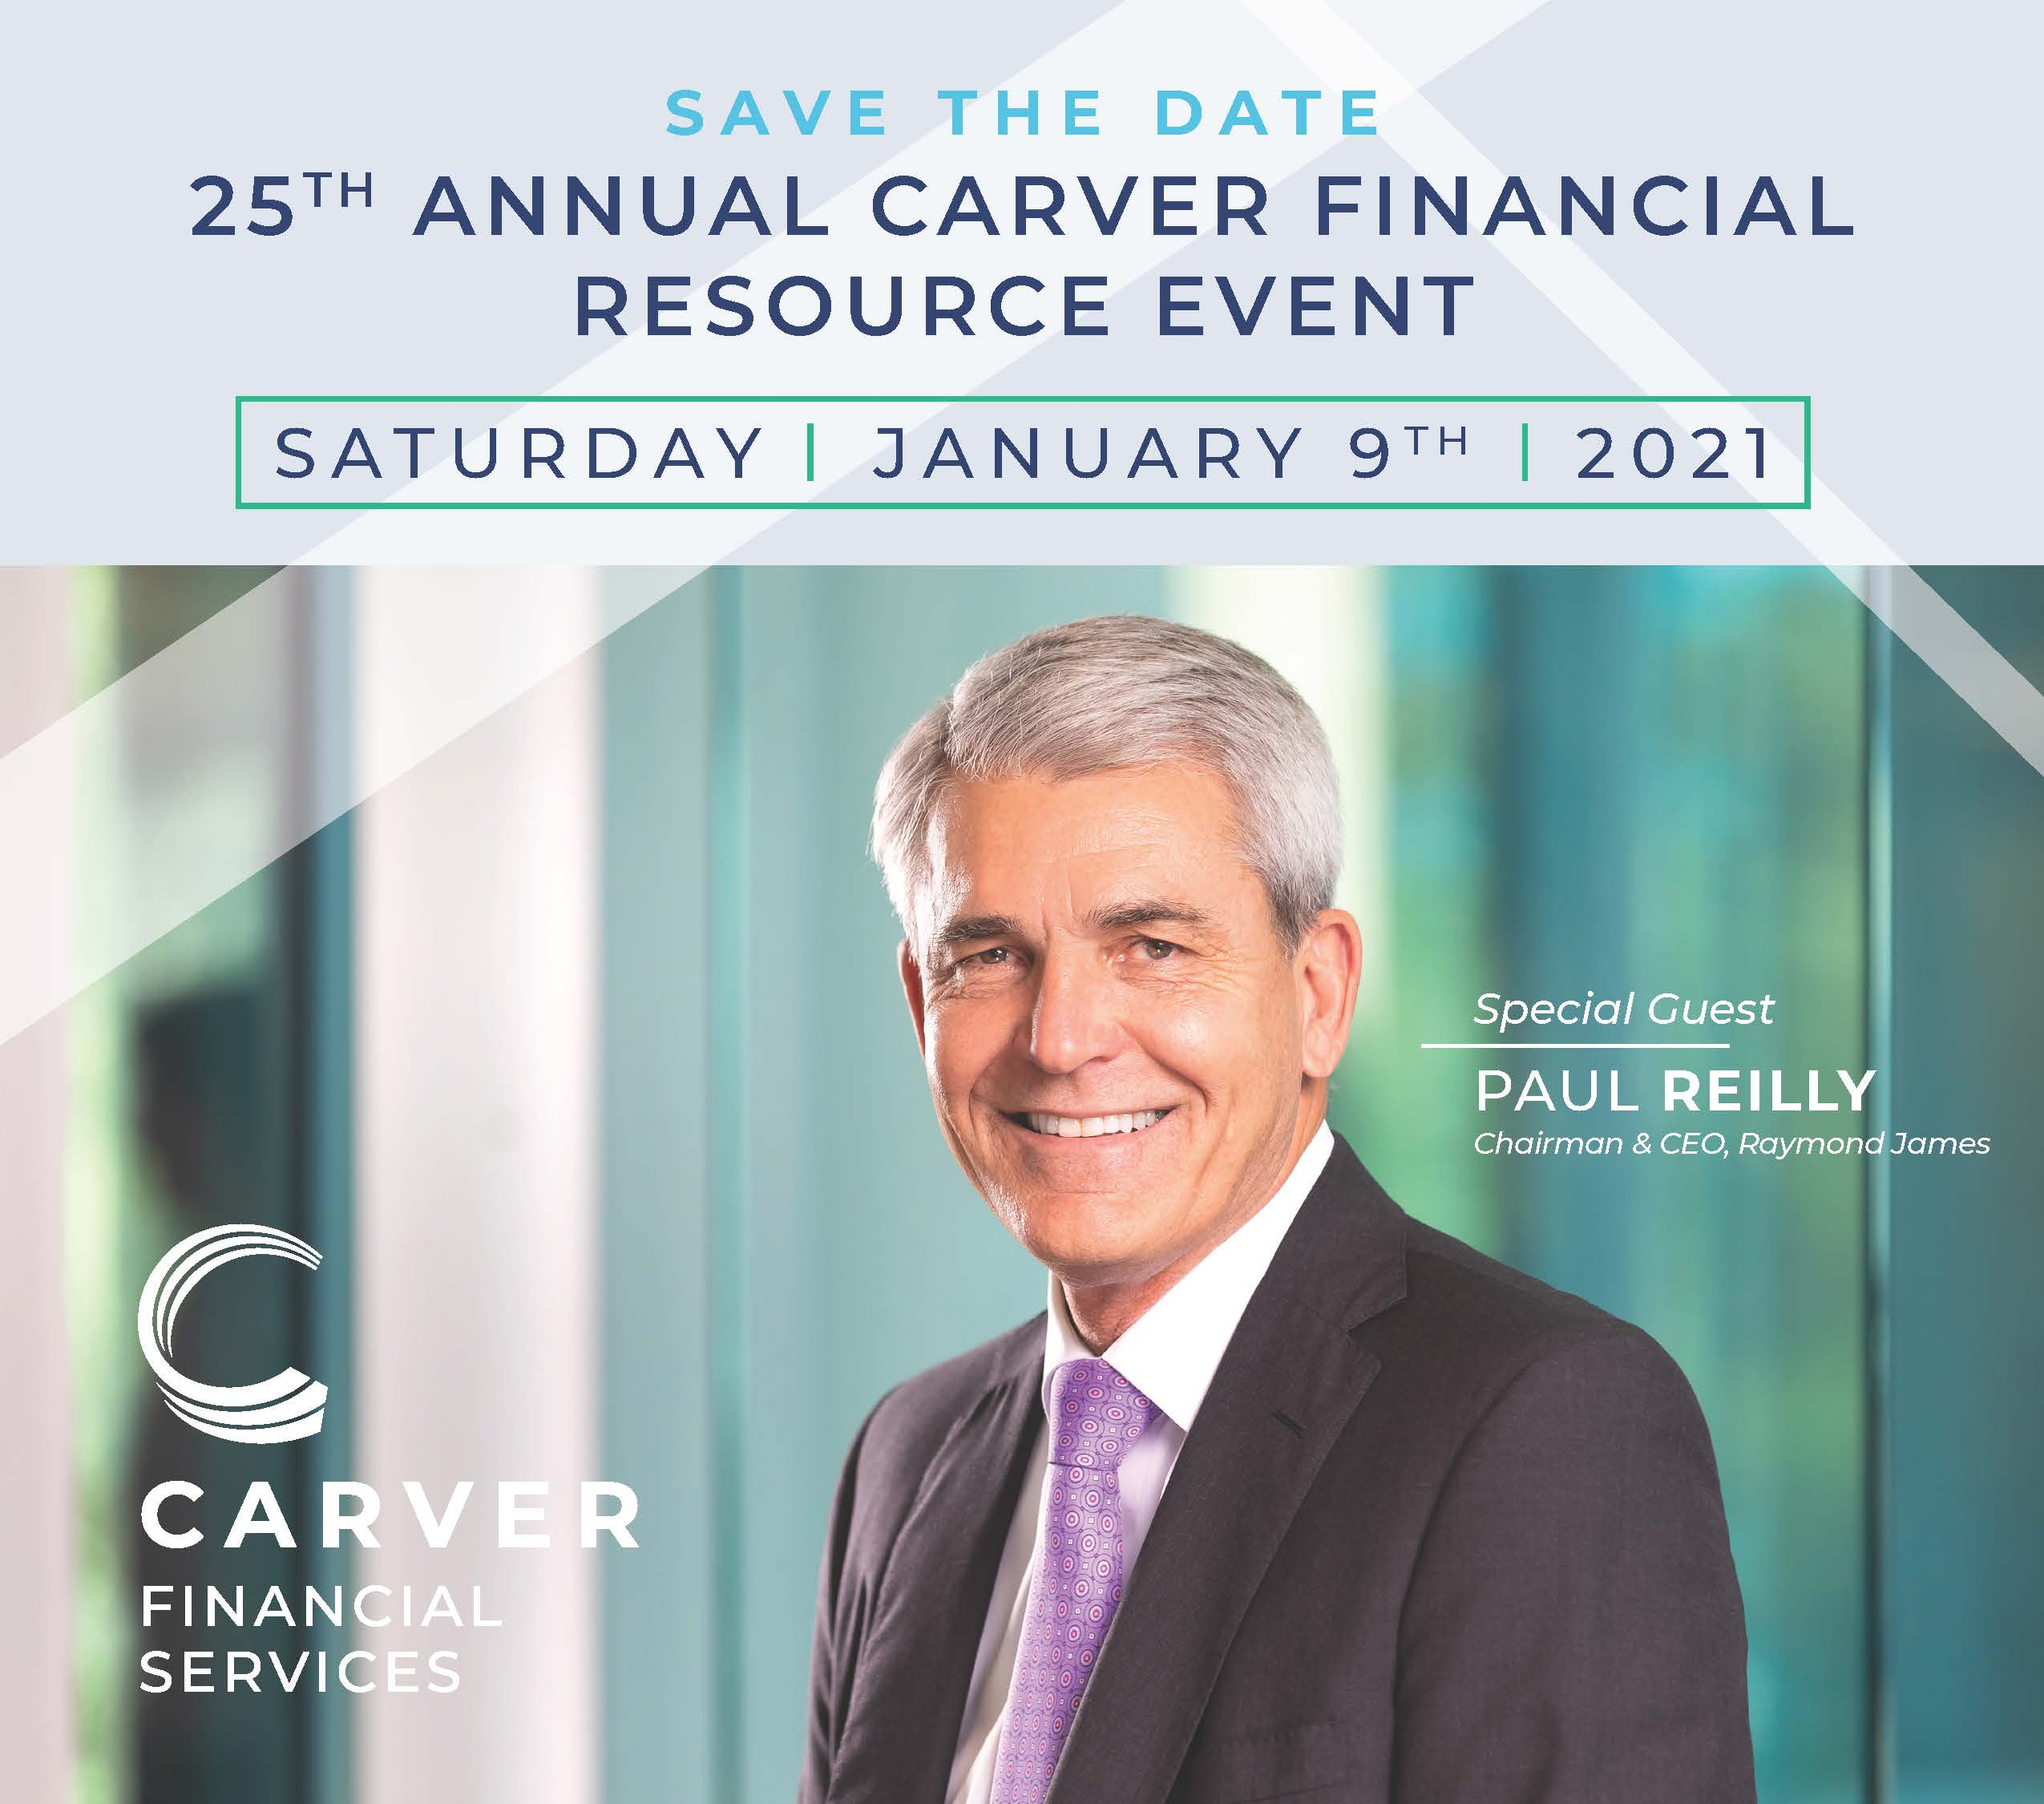 25th Annual Carver Financial Resource Event